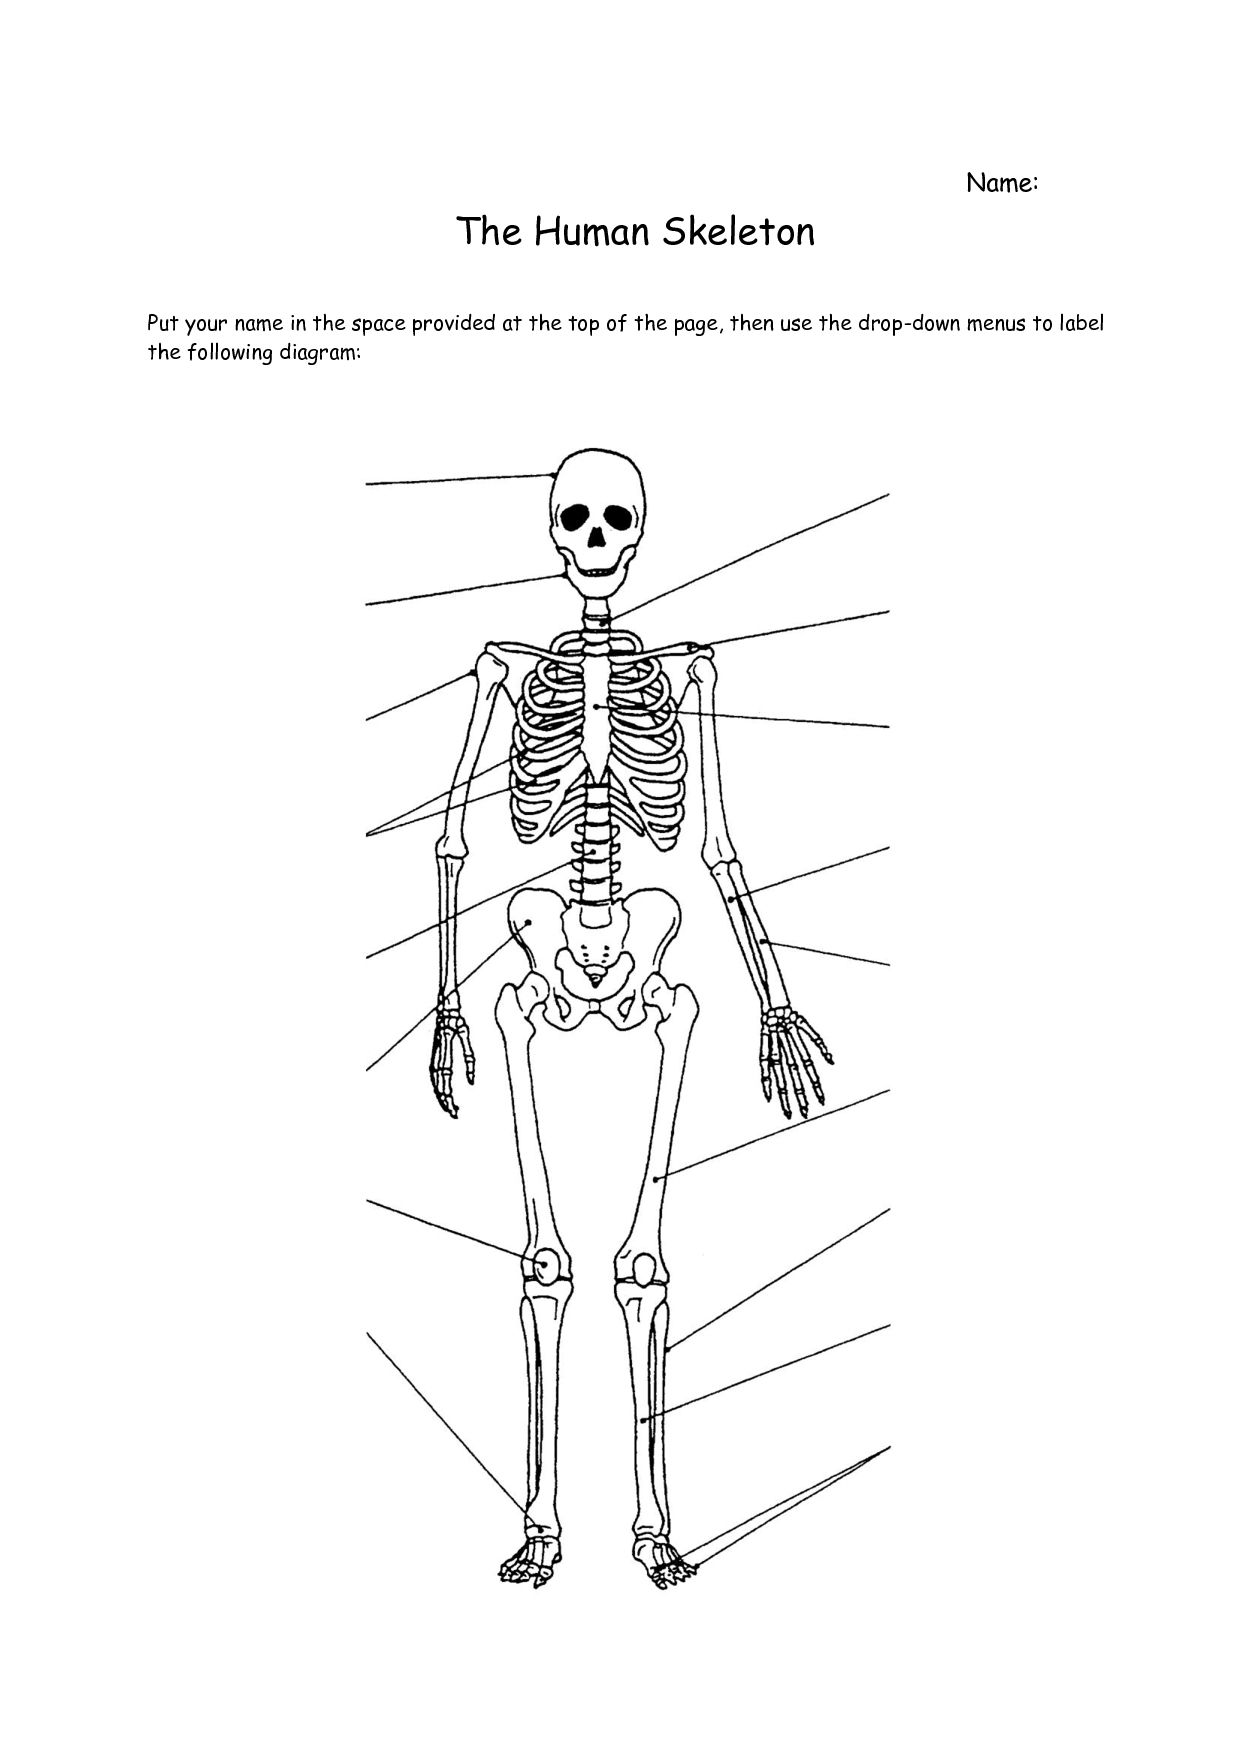 unlabeled diagram of the human skeleton unlabeled diagram of the long bone diagram unlabled [ 1240 x 1754 Pixel ]